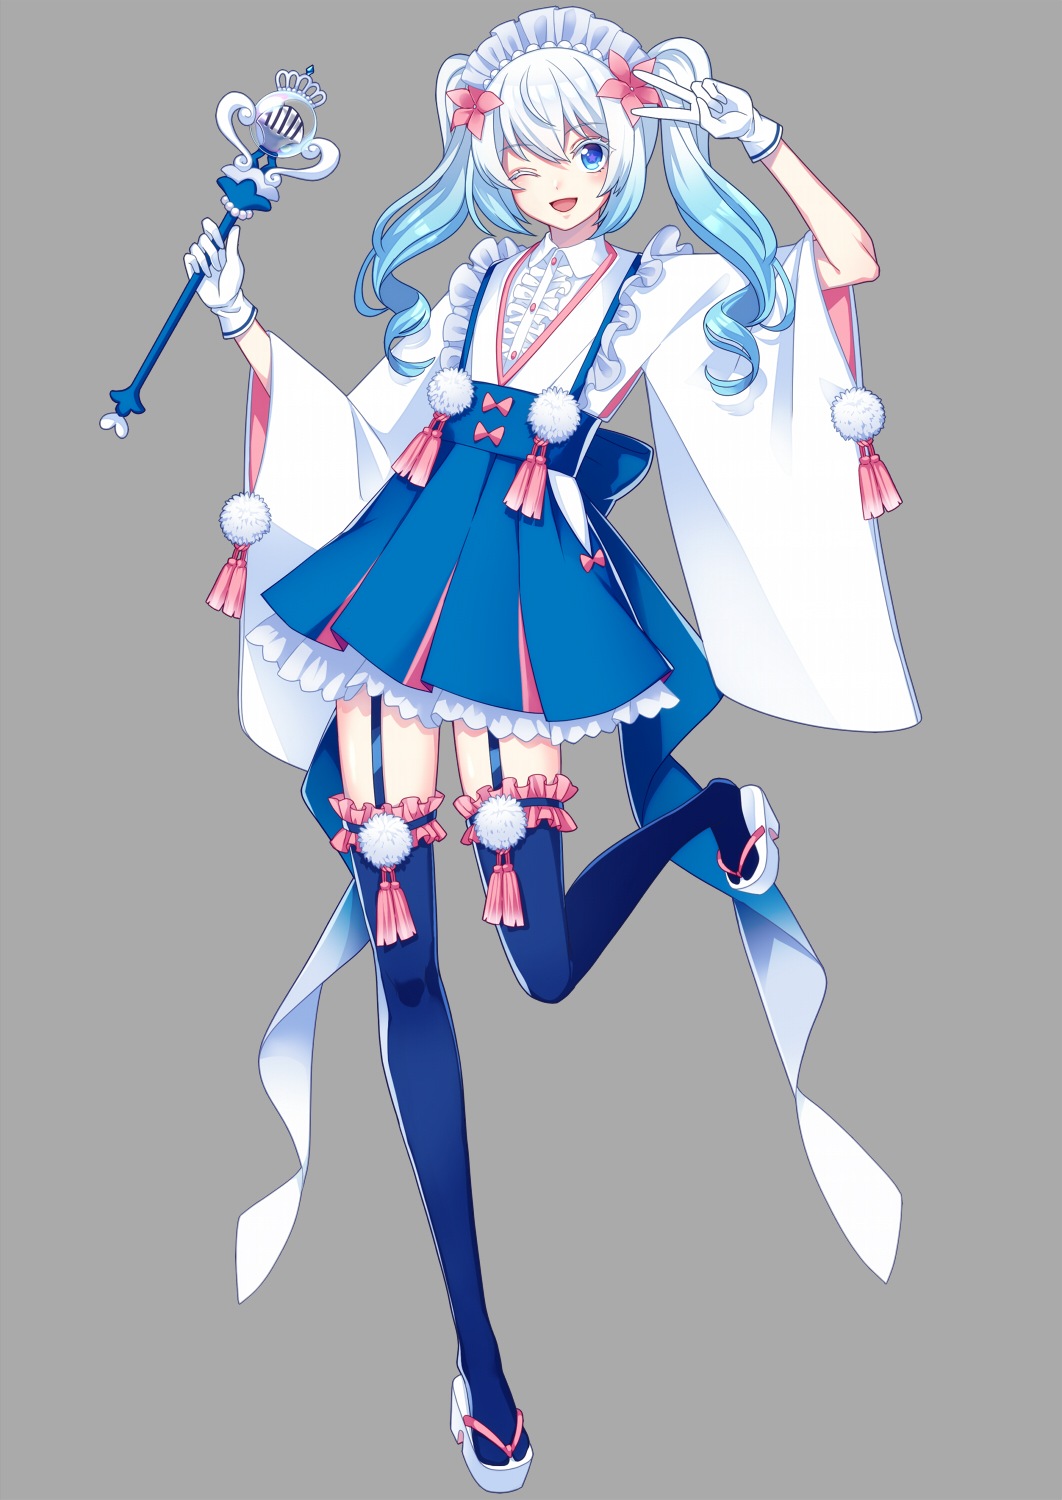 1girl ;p blue_hair blue_legwear blue_skirt creatures_(company) flat_chest flower full_body game_freak garter_straps gen_7_pokemon gloves gradient_hair grey_background hair_flower hair_ornament hairband hand_up highres holding holding_wand long_hair looking_at_viewer merlusa multicolored_hair nintendo one_eye_closed personification pleated_skirt pokemon pom_pom_(clothes) primarina sandals simple_background skirt solo standing standing_on_one_leg thigh-highs tongue tongue_out v wand white_gloves white_hair wide_sleeves